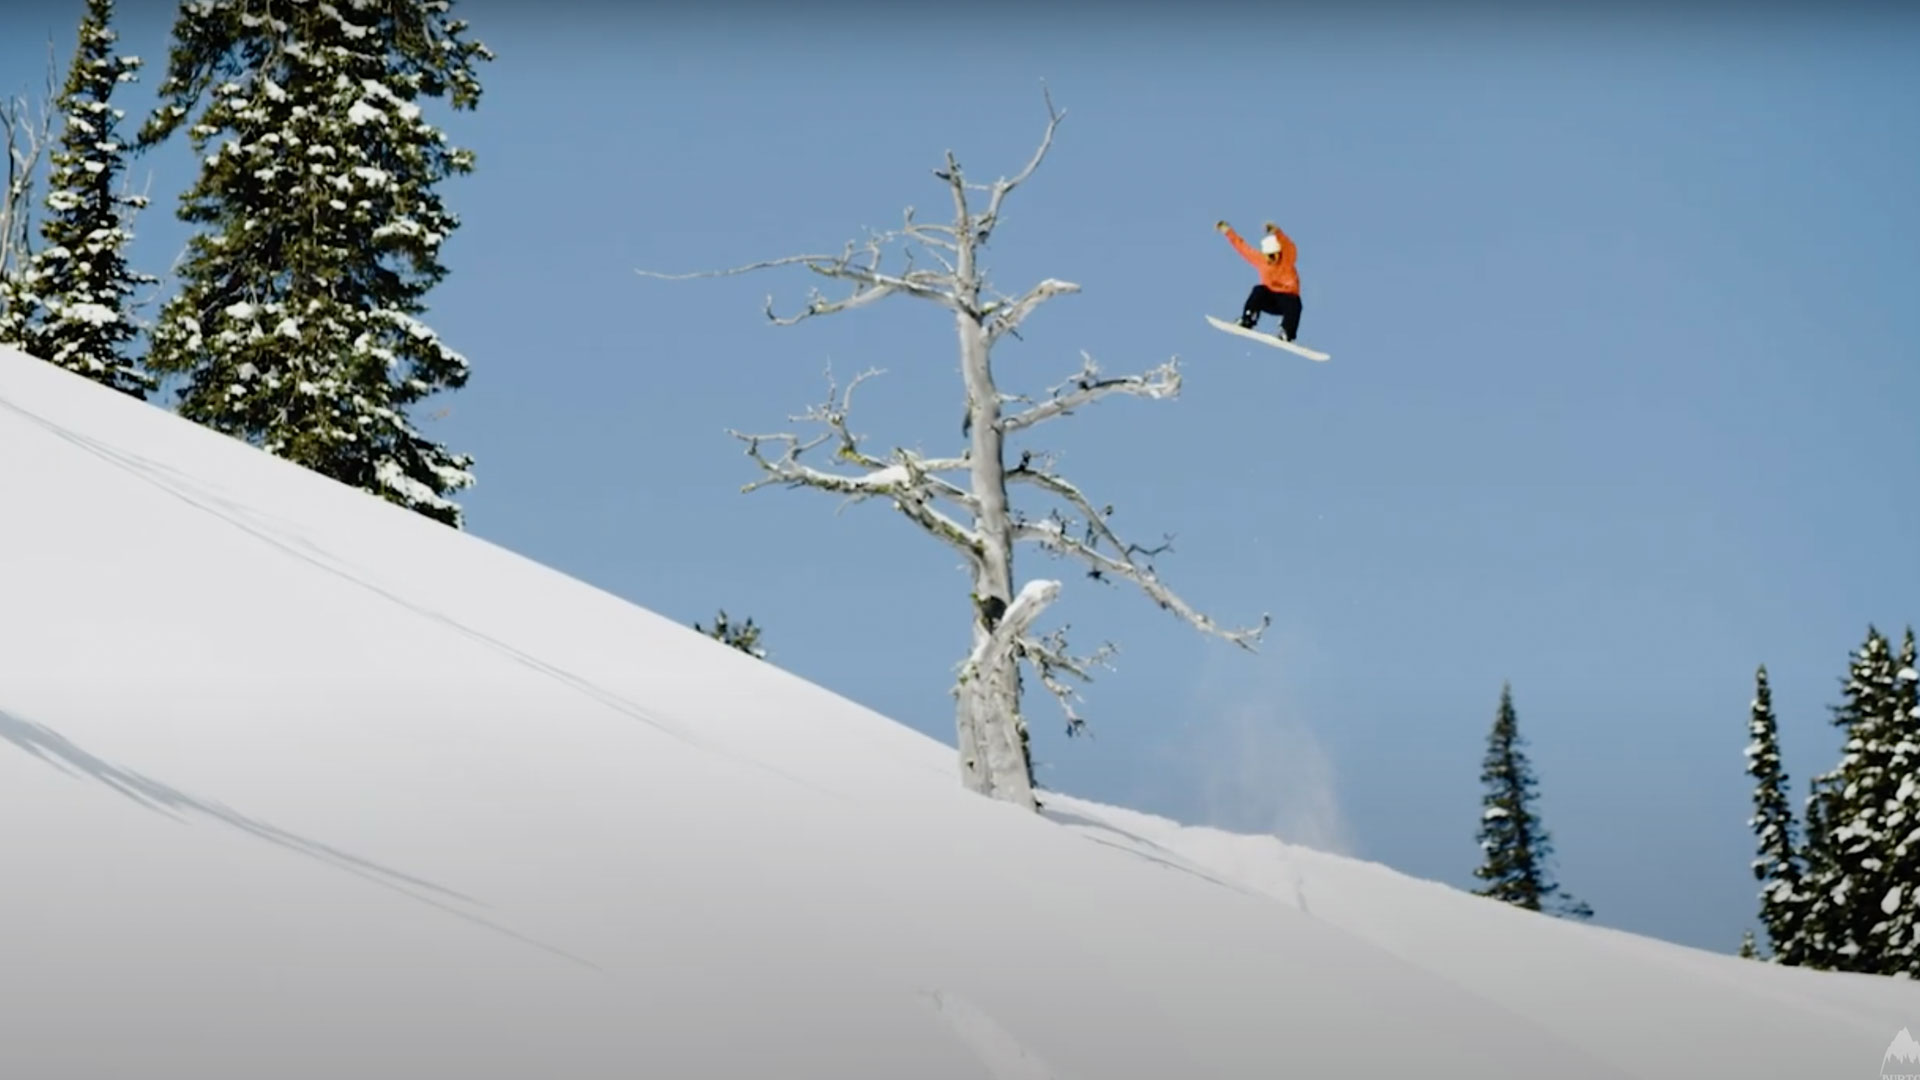 Snowboarder cover image